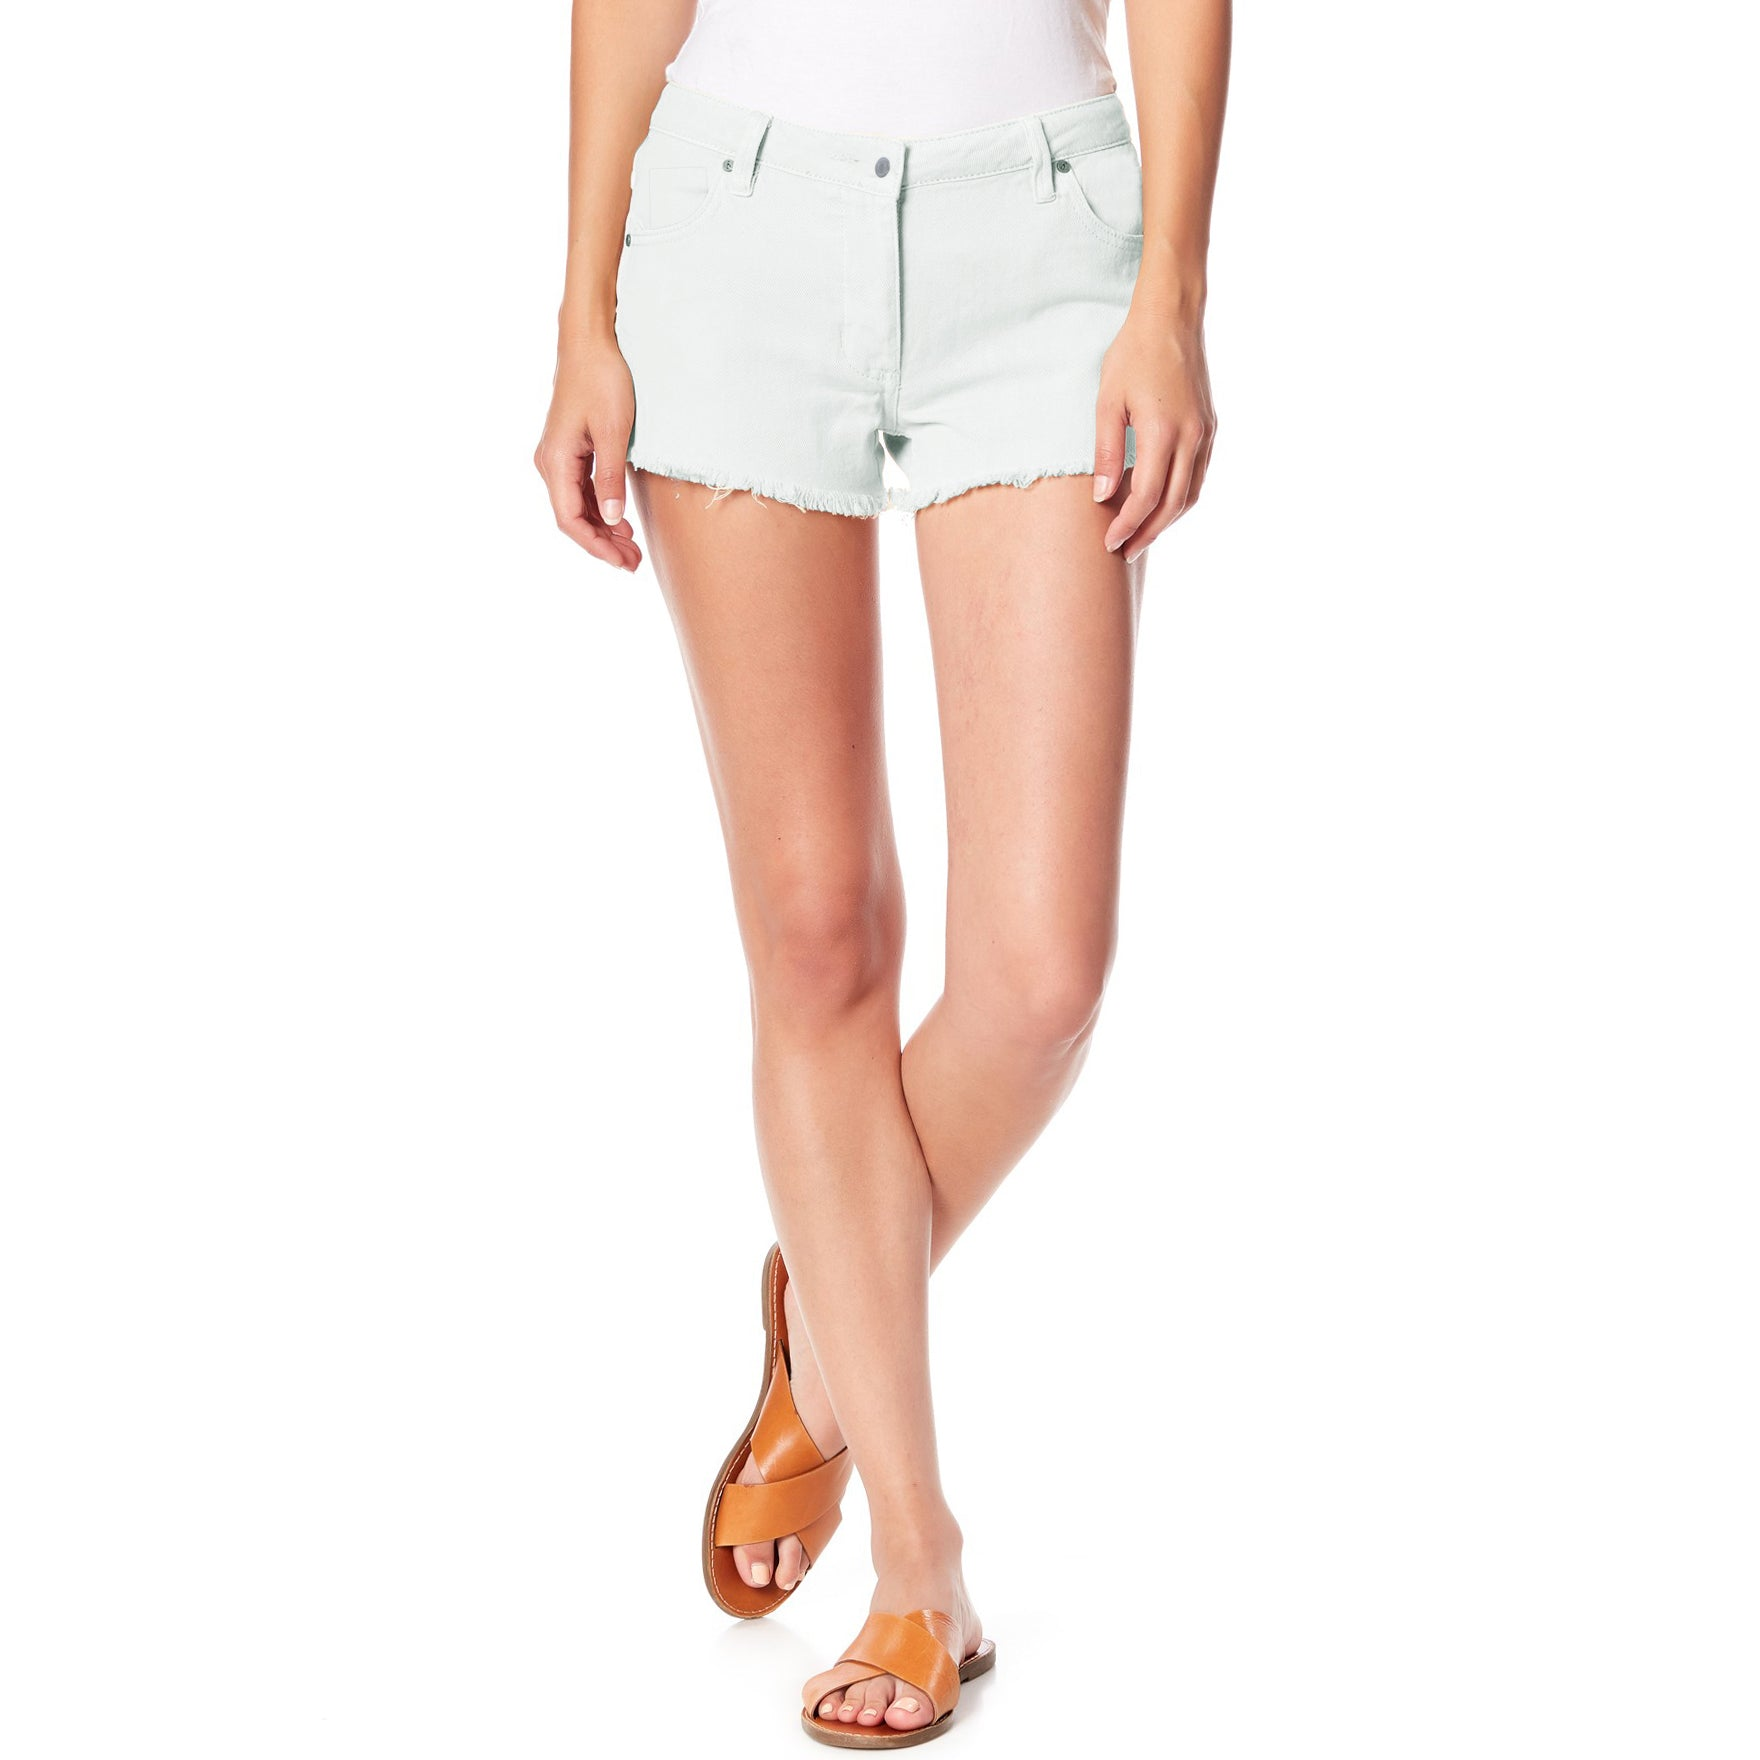 Tammy Girl Denim Short For Ladies-Alice Blue-SP047